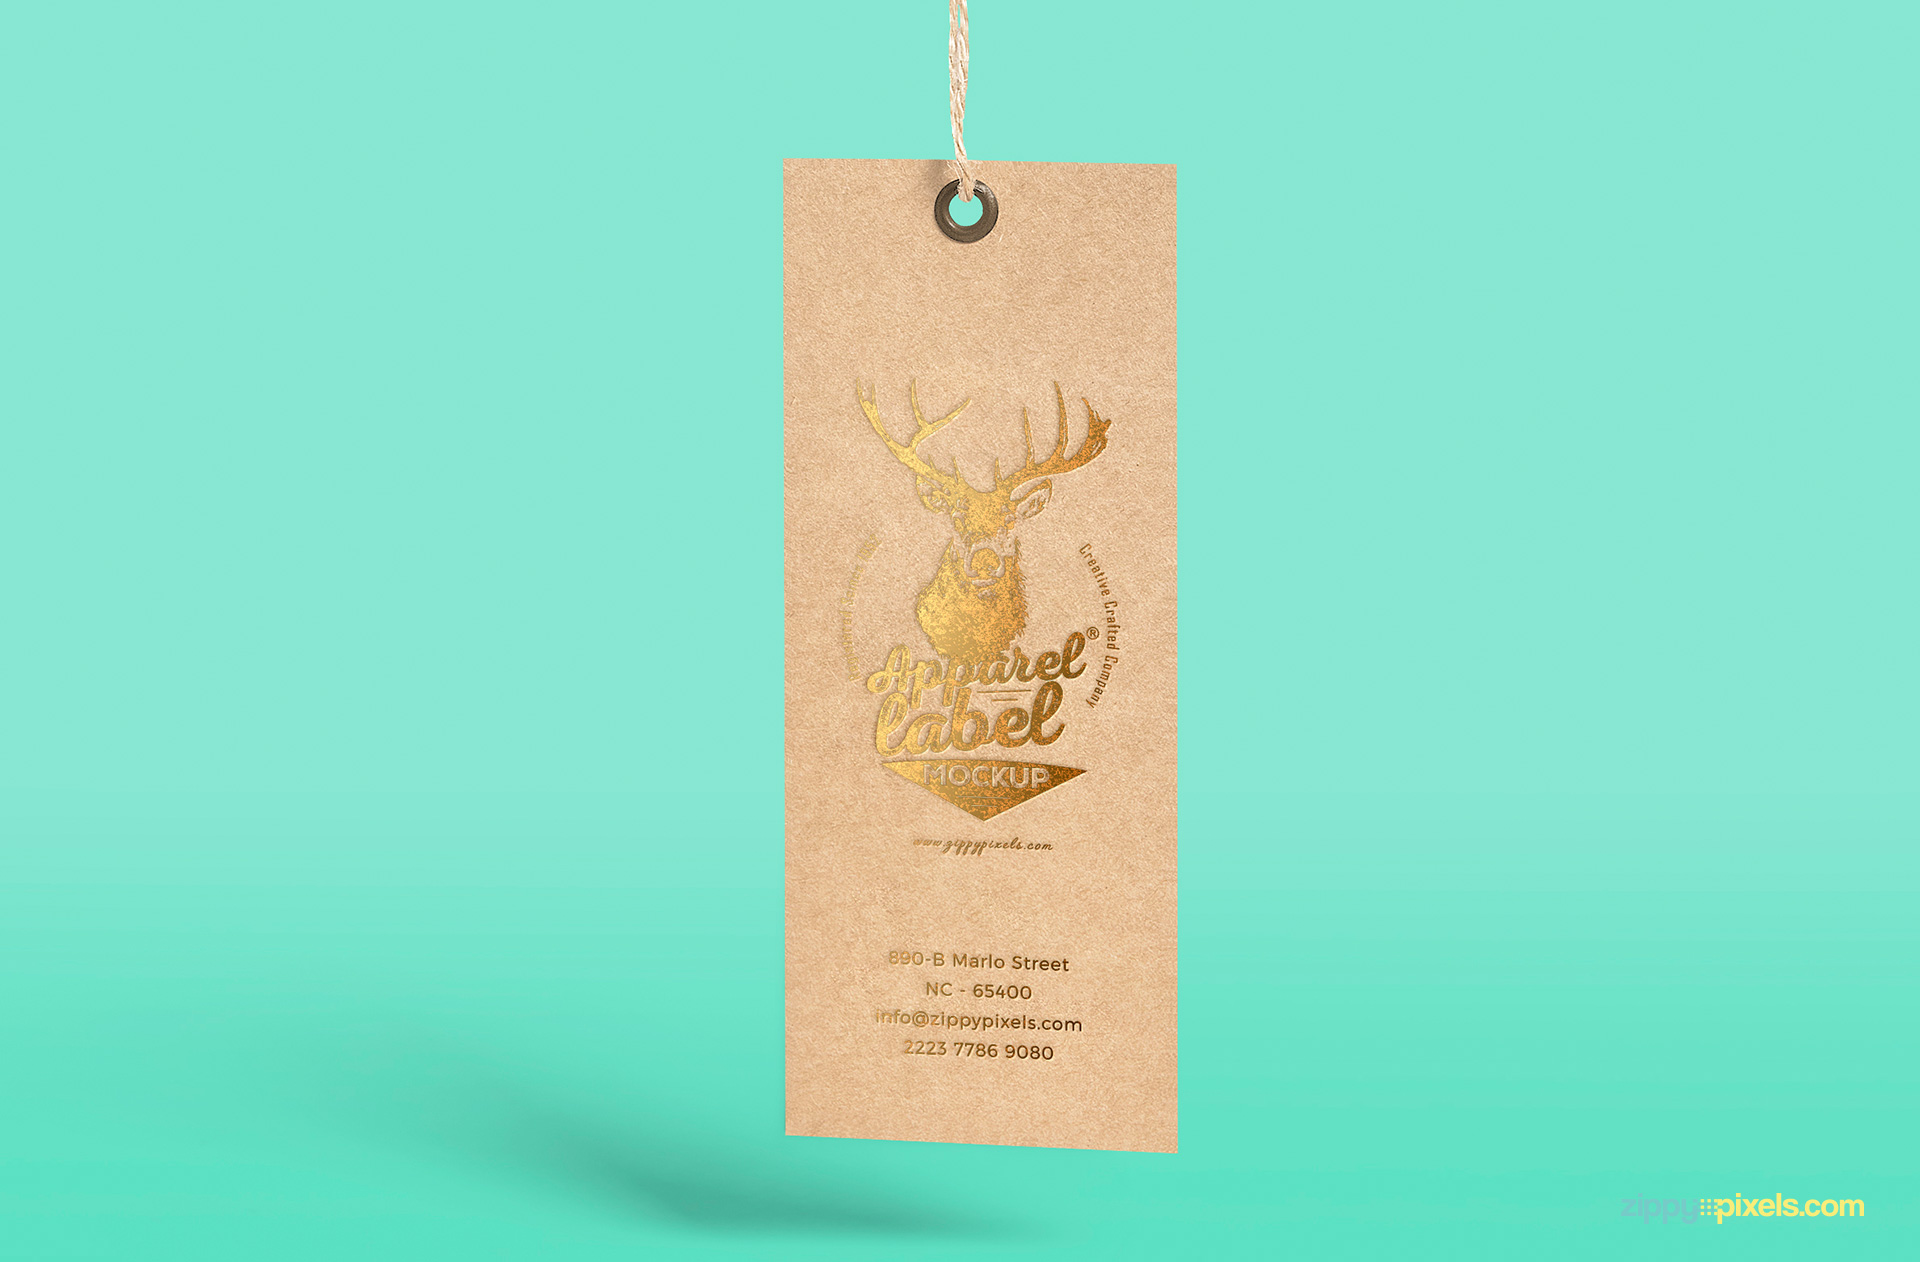 excellent-golden-smart-object-option-in-free-apparel-label-tag-mockup-psd